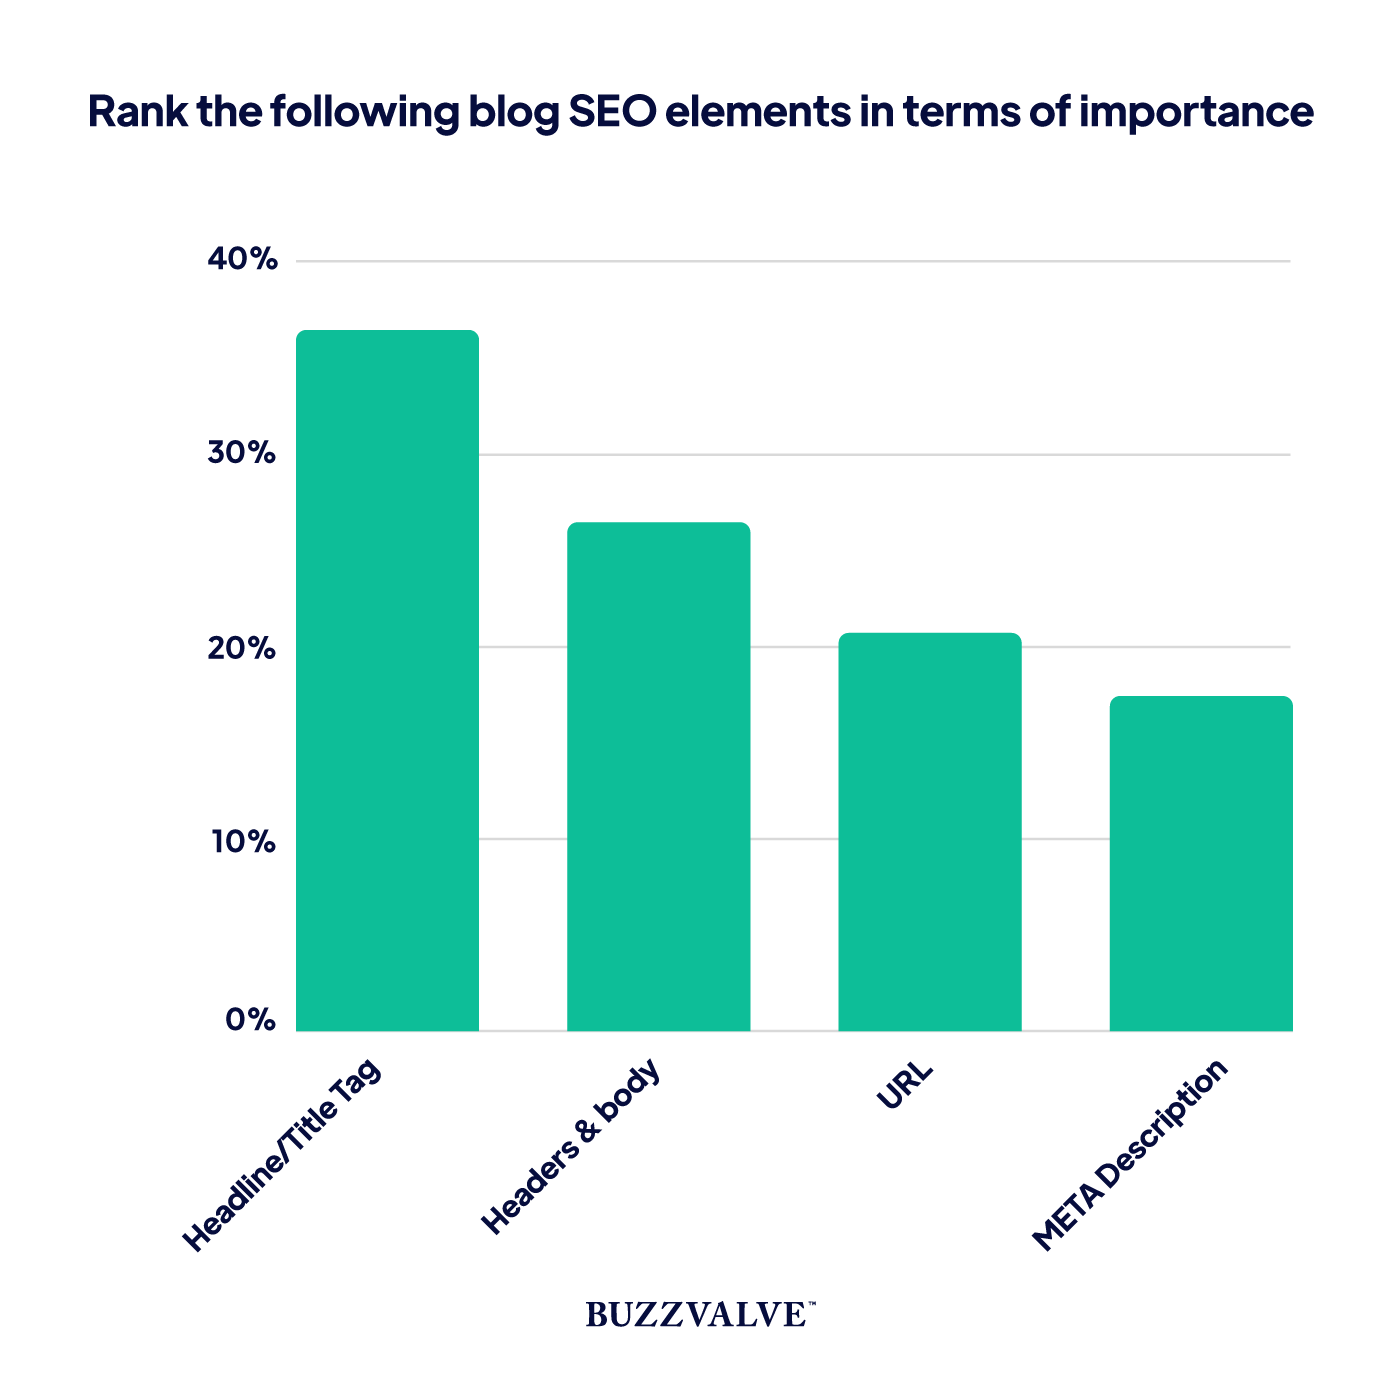 SEO elements ranked in terms of importance